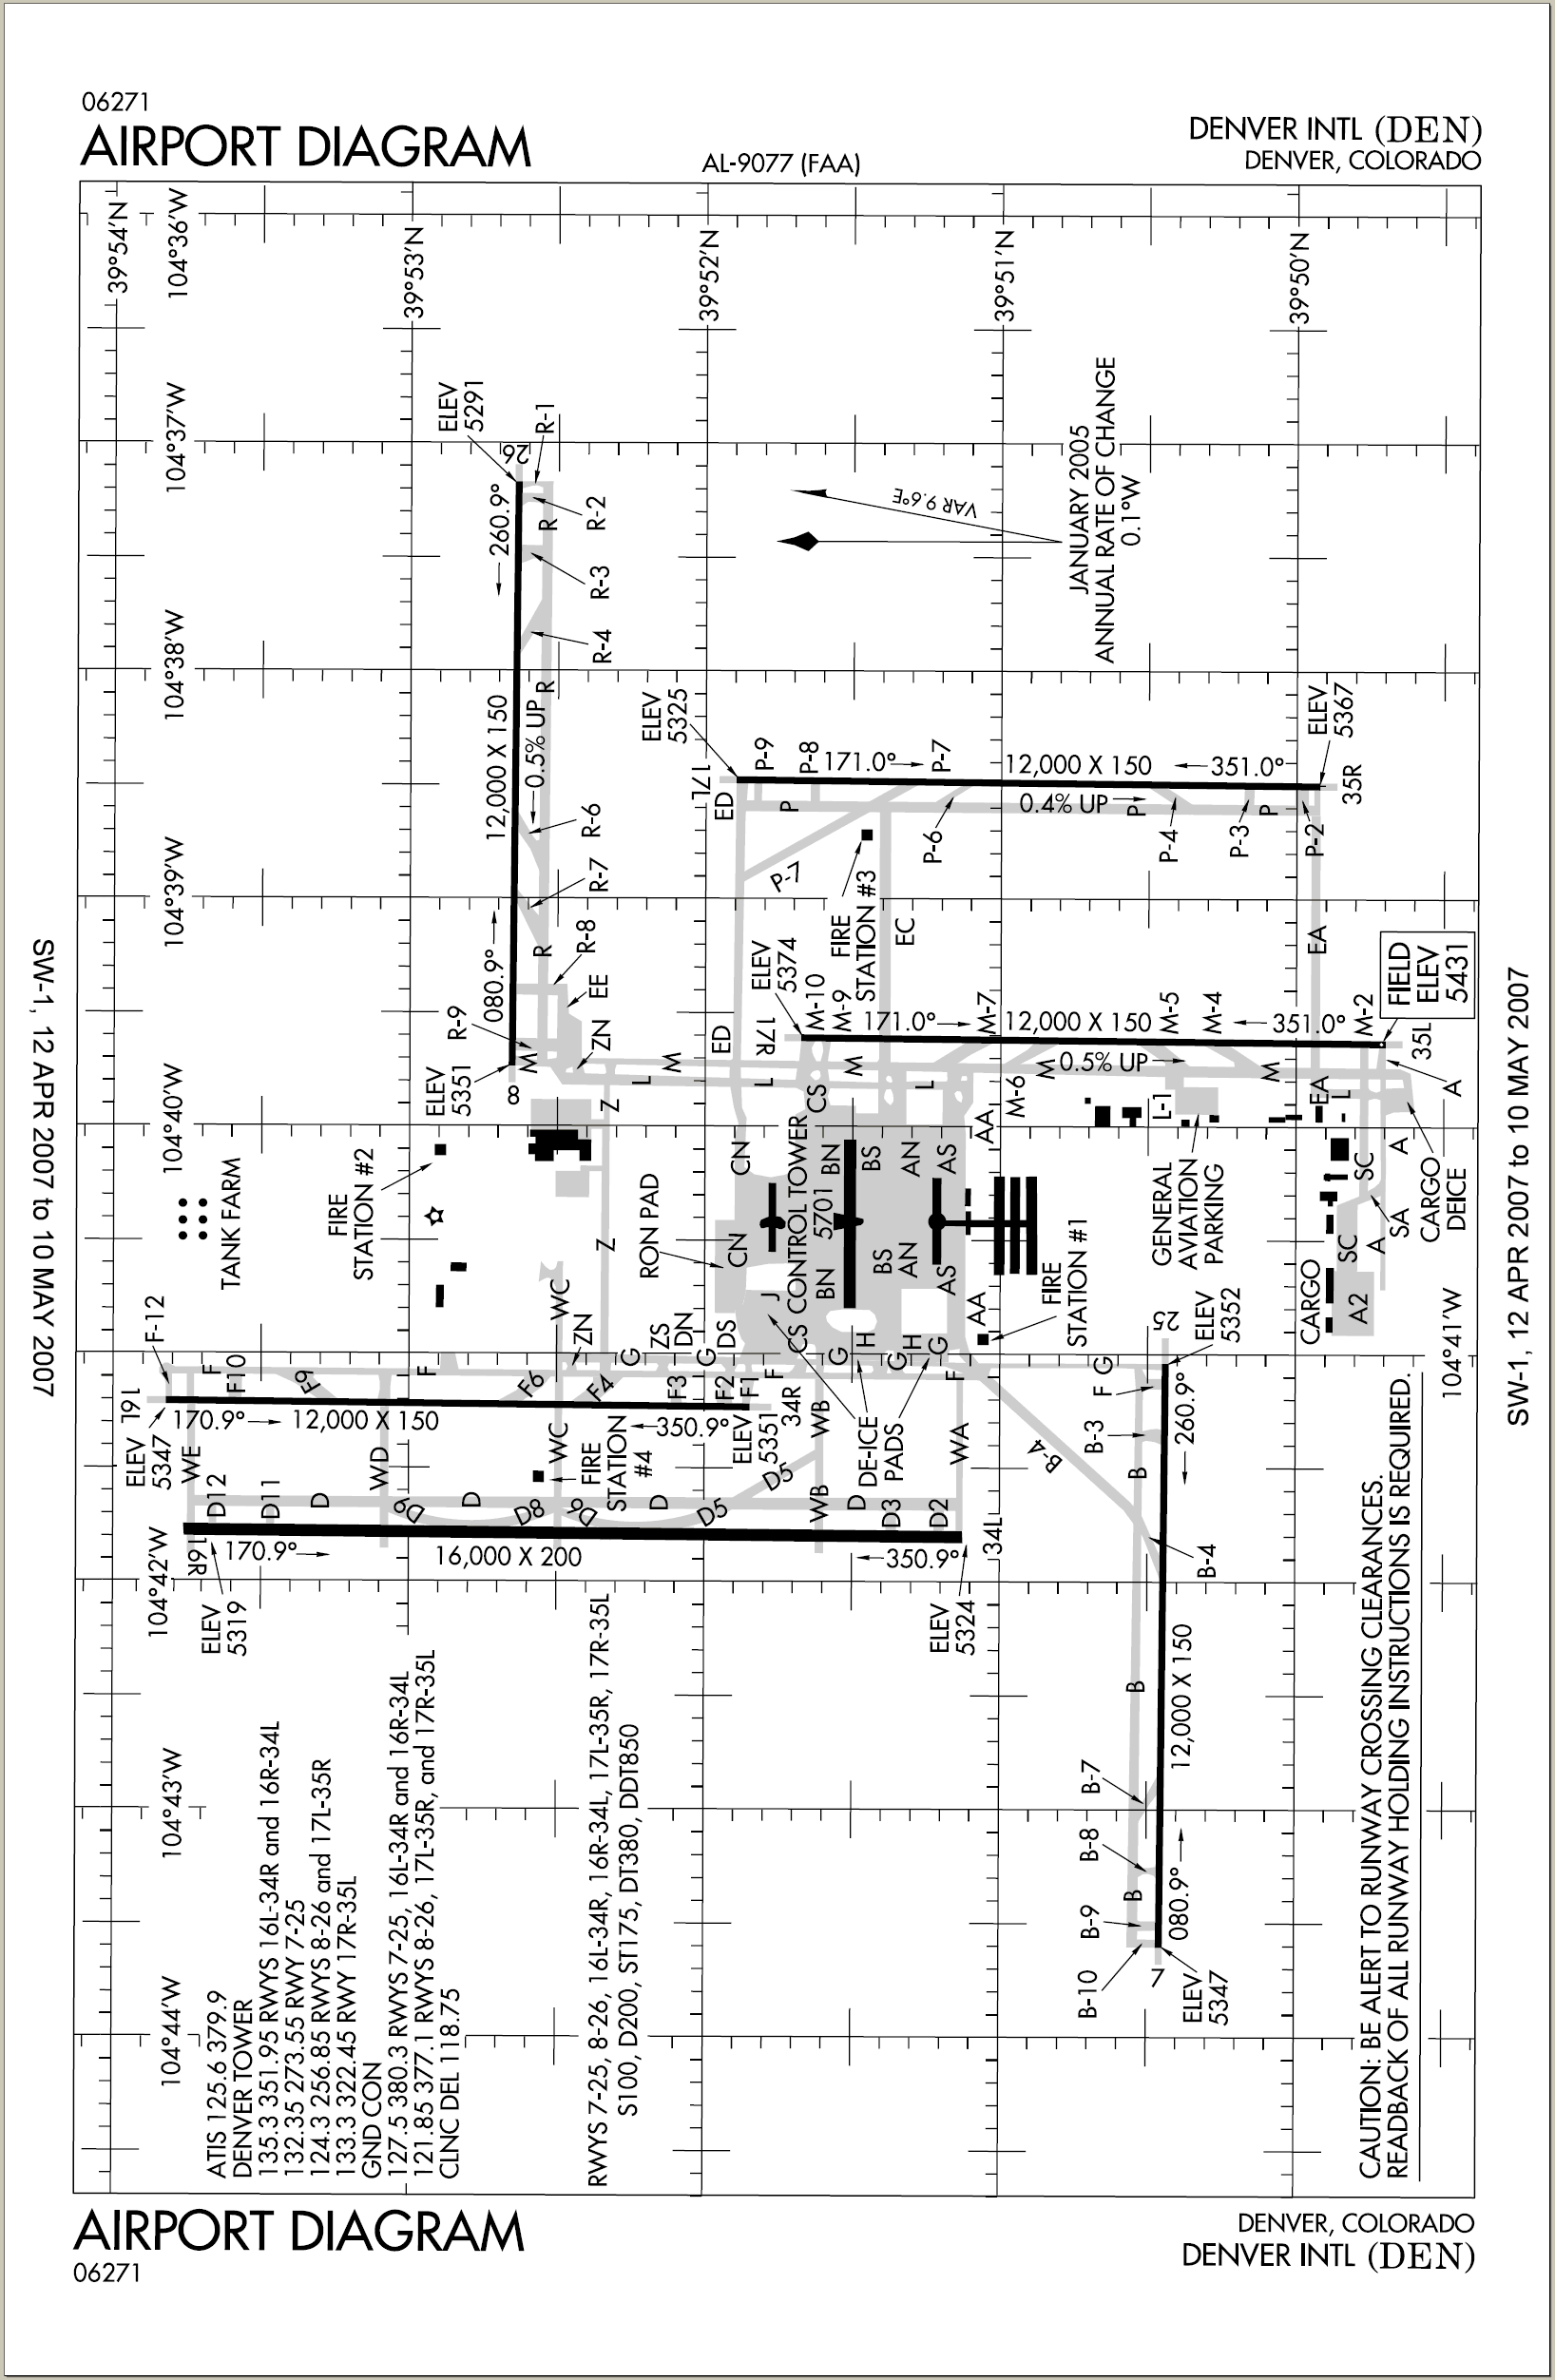 Denver International Airport Diagram Some Believe The